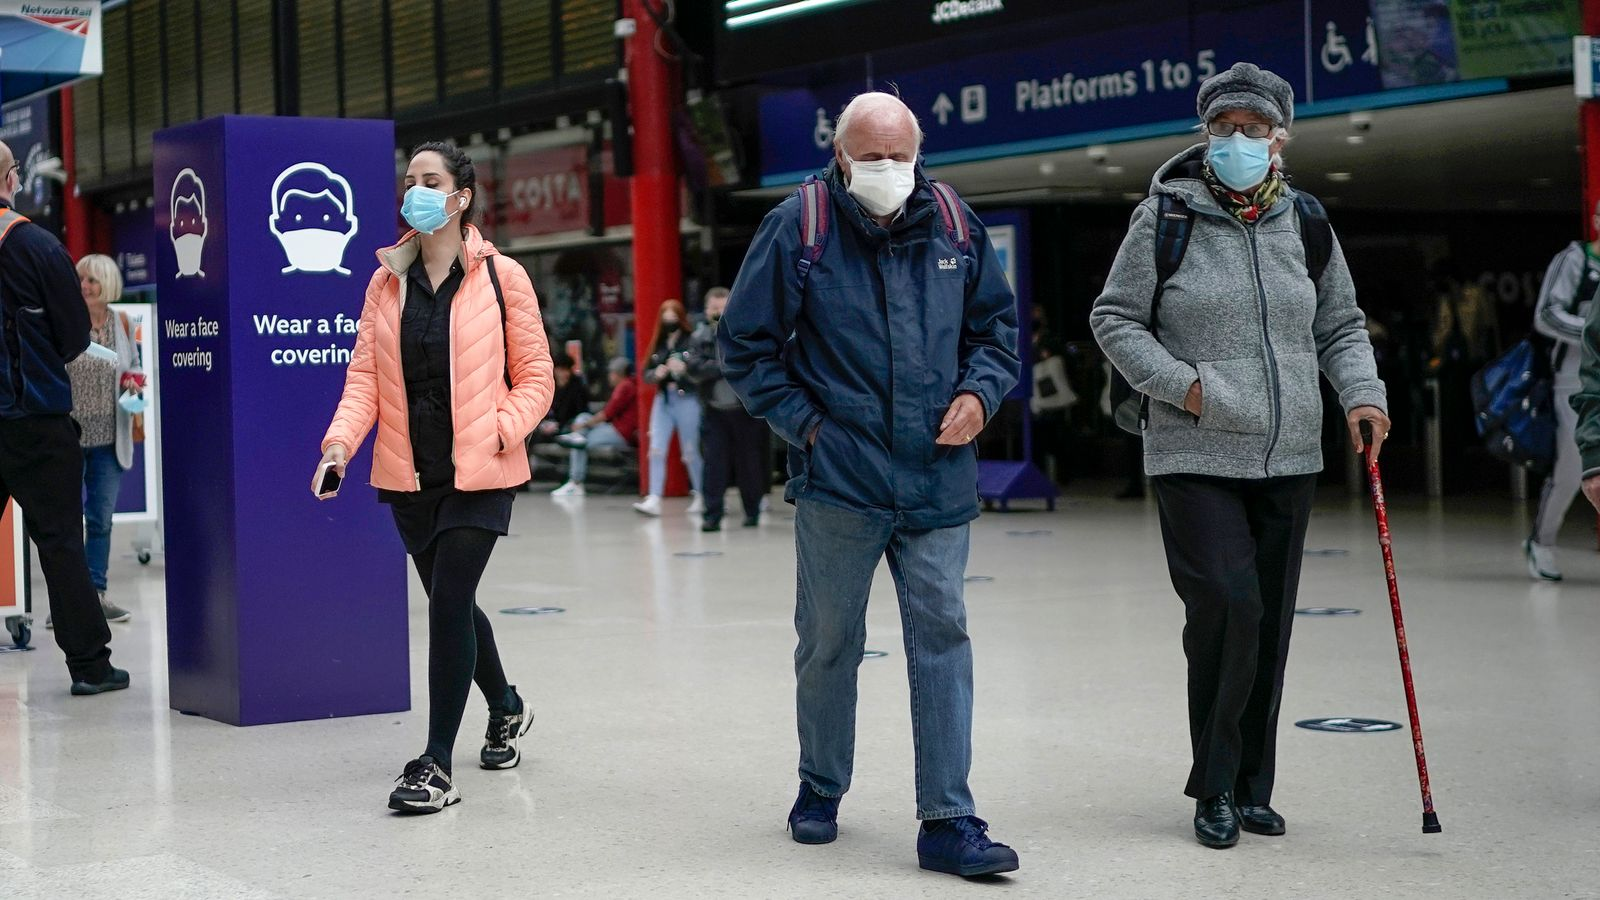 Coronavirus: New local lockdown rules announced in parts of North West. Midlands and West Yorkshire | UK News | Sky News